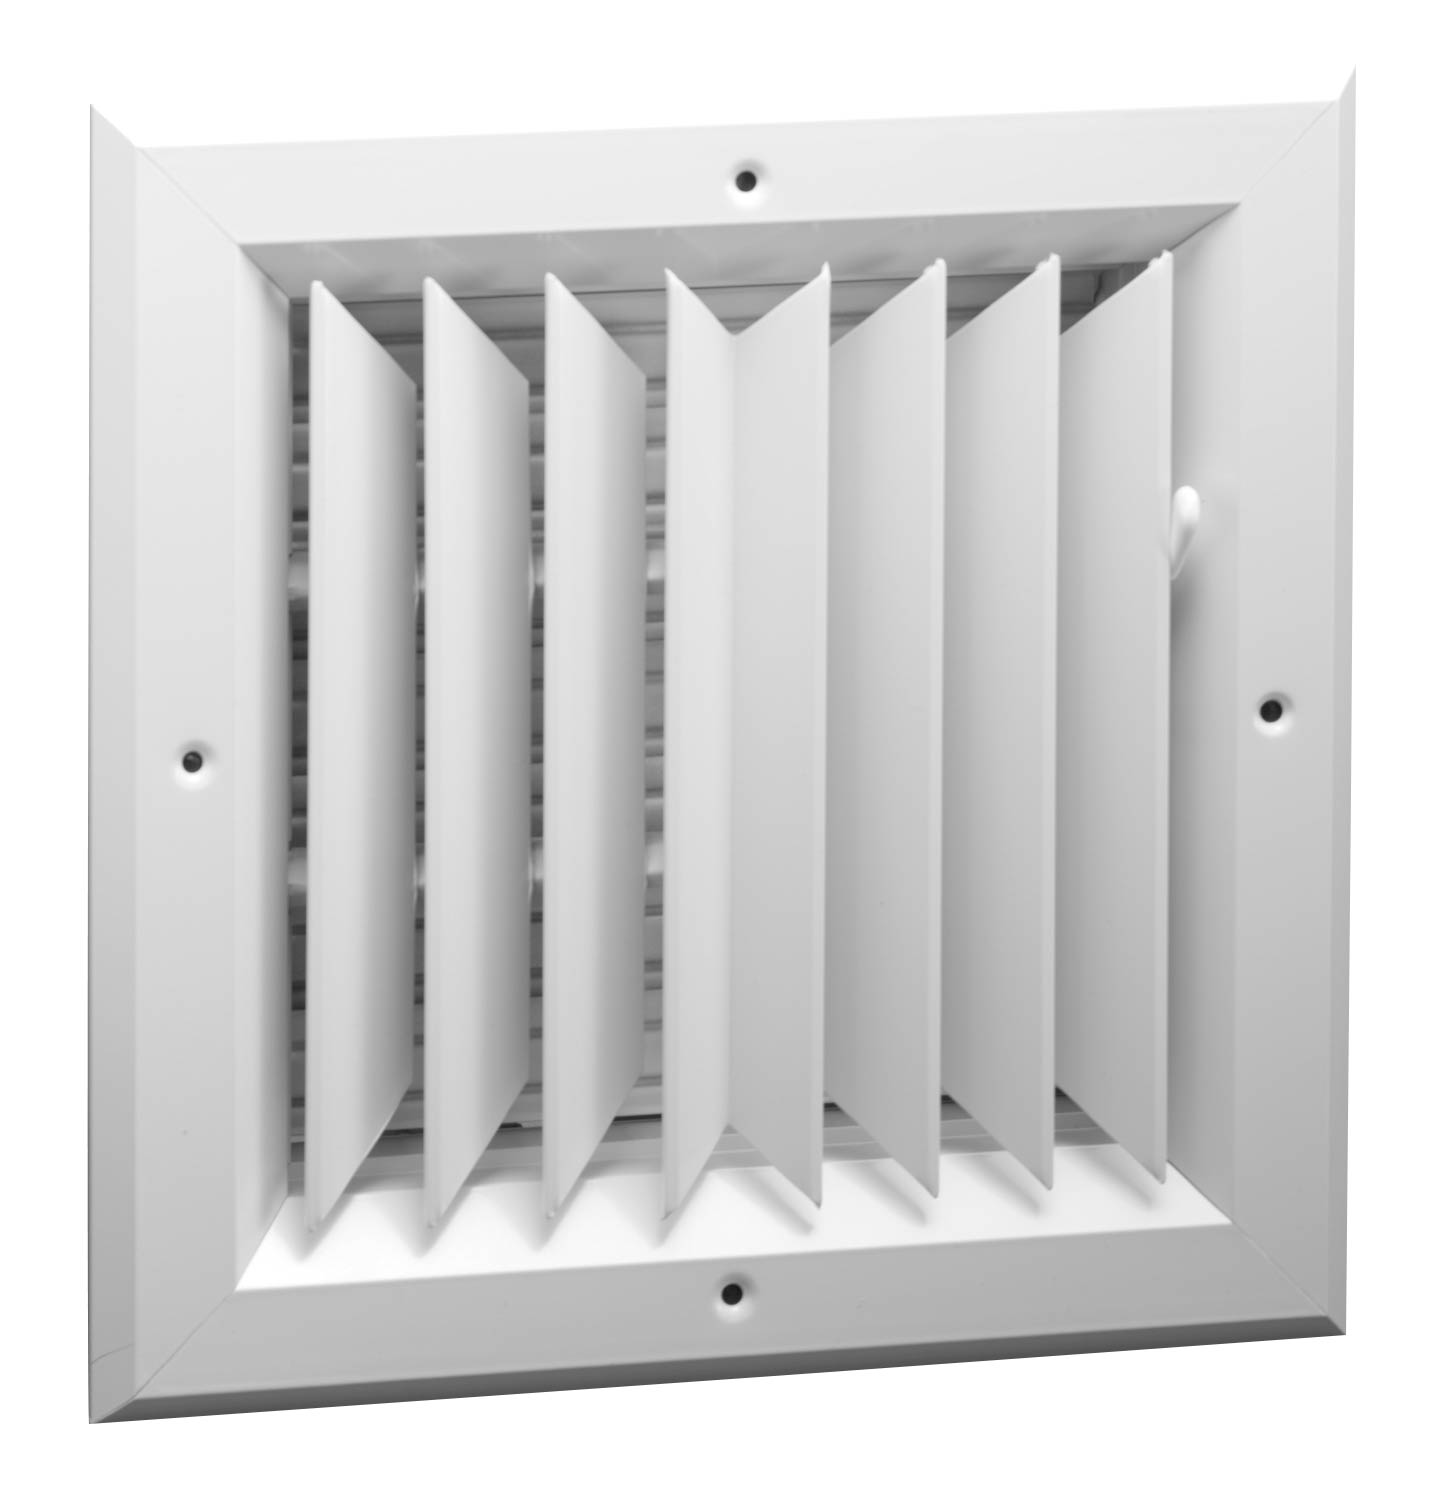 grille single slot ct linear ceiling examples diffuser